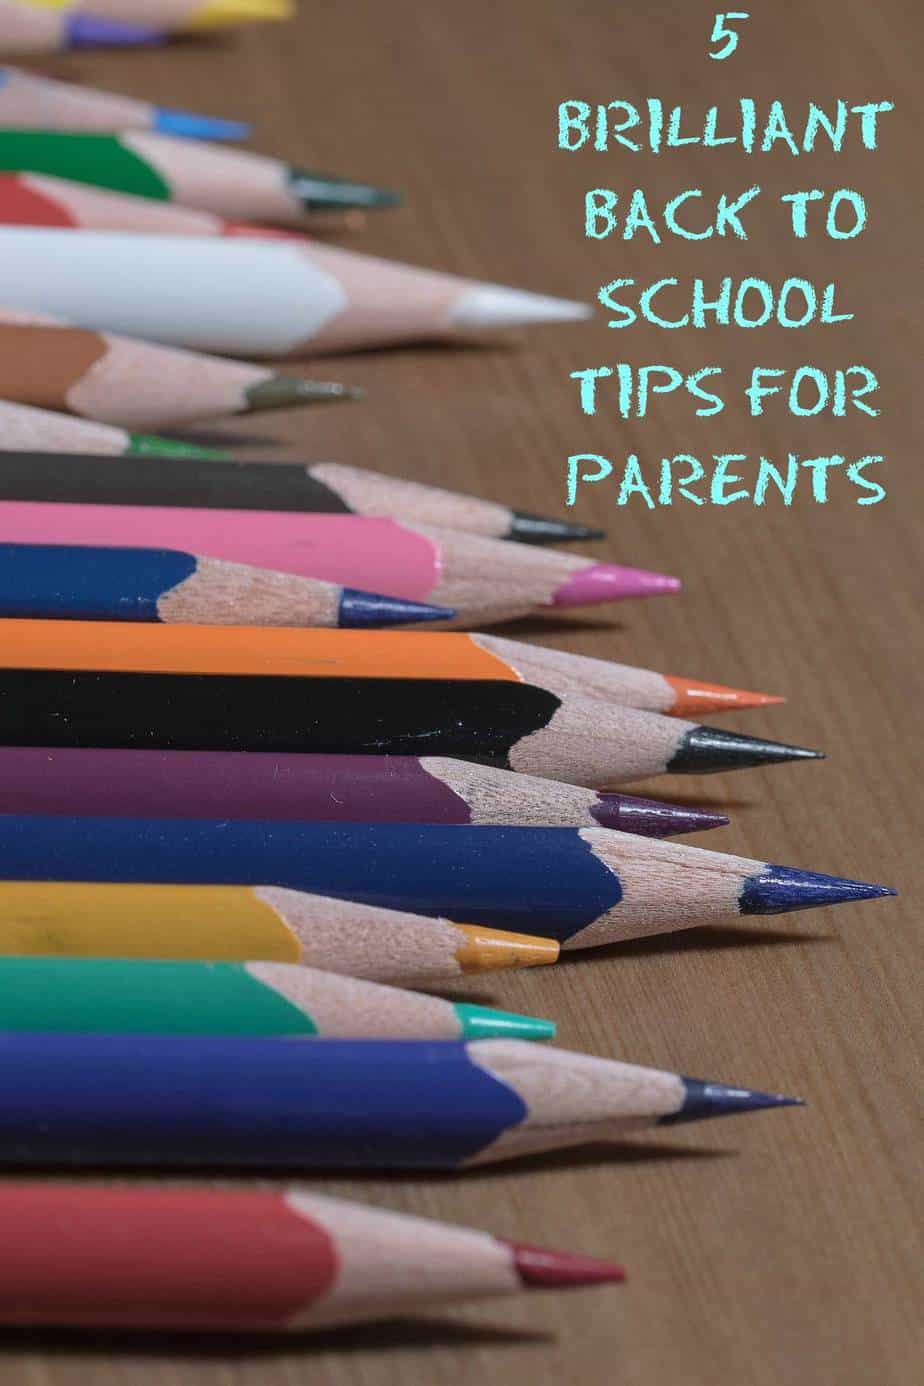 back to school tips, back to school tips for parents